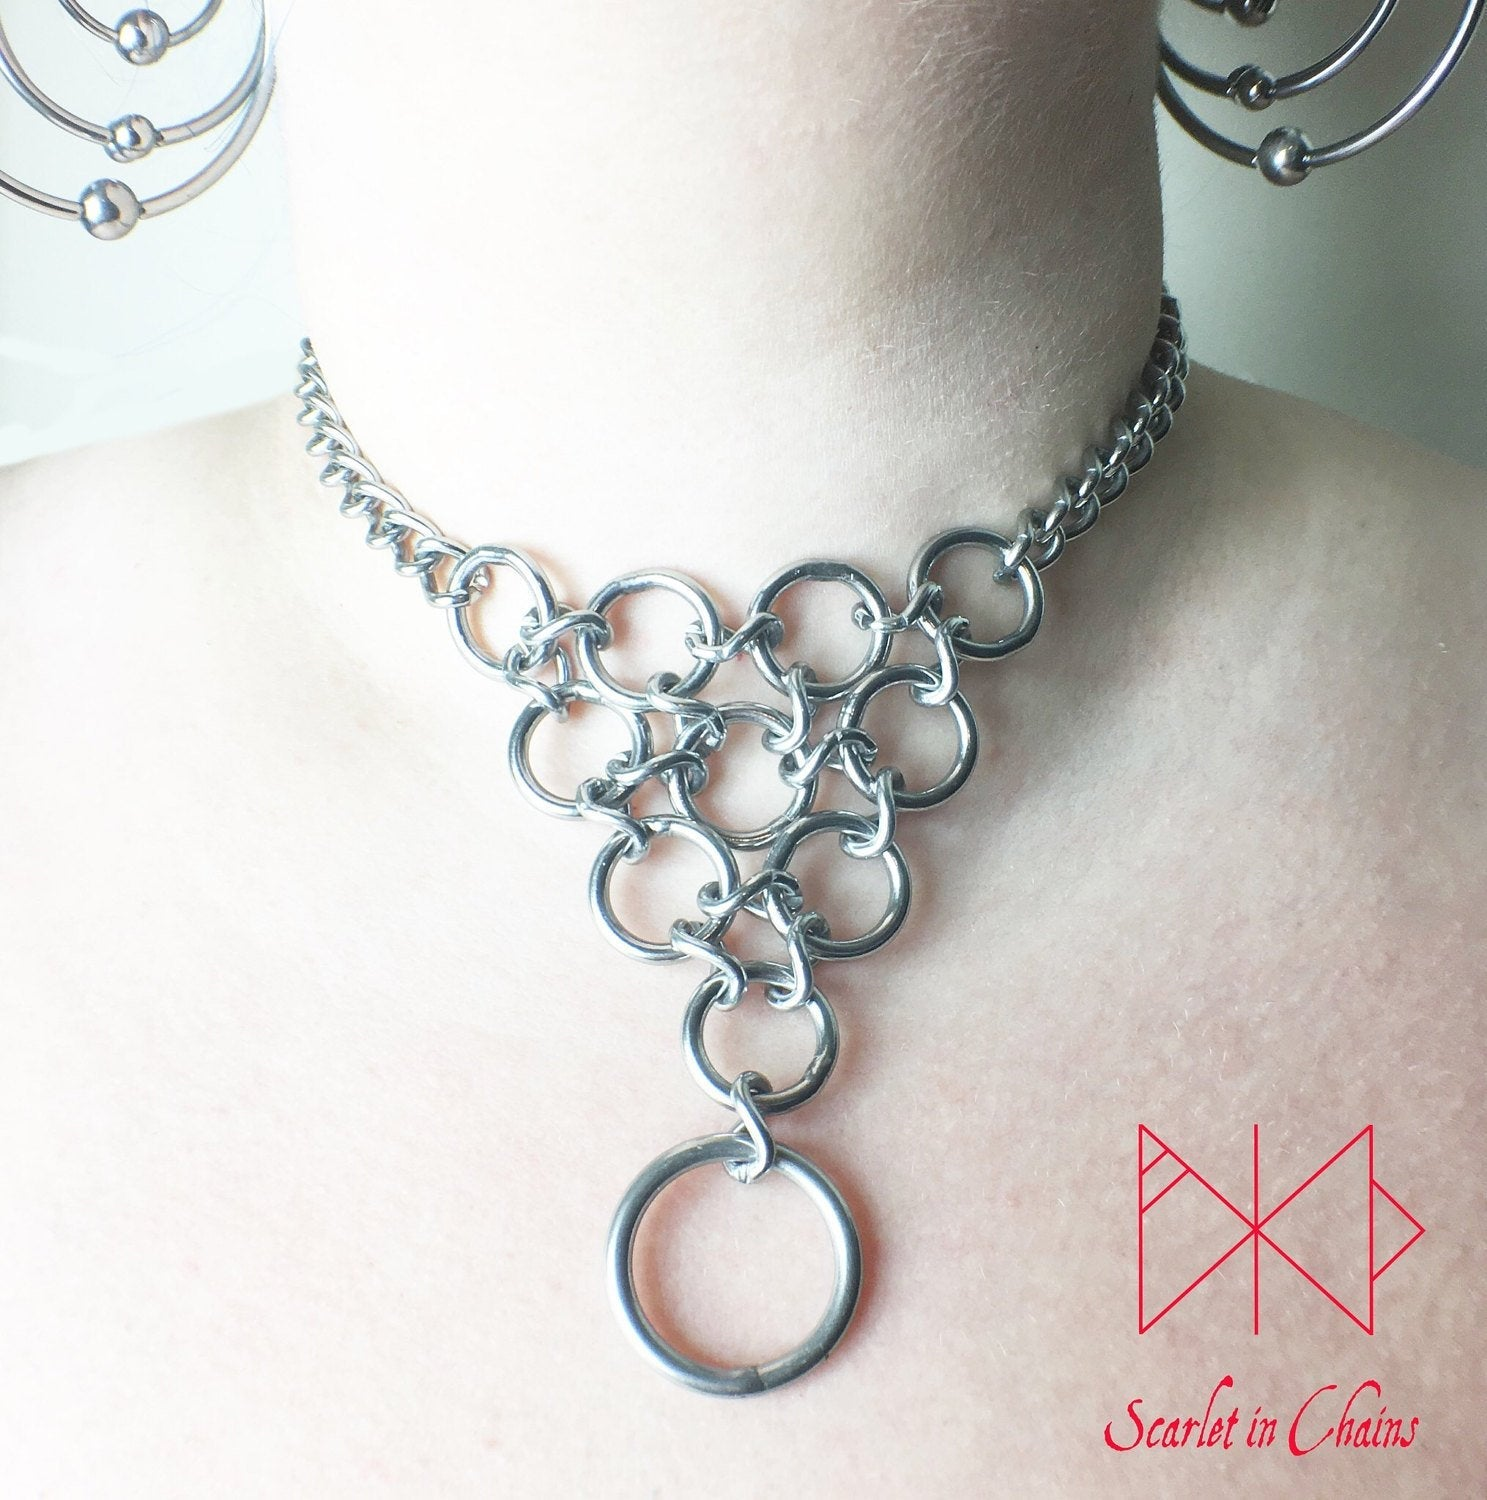 Huntress Day Collar worn Stainless steel chain choker with a triangle of o rings and a larger o ring hanging from the point of the inverted triangle of rings